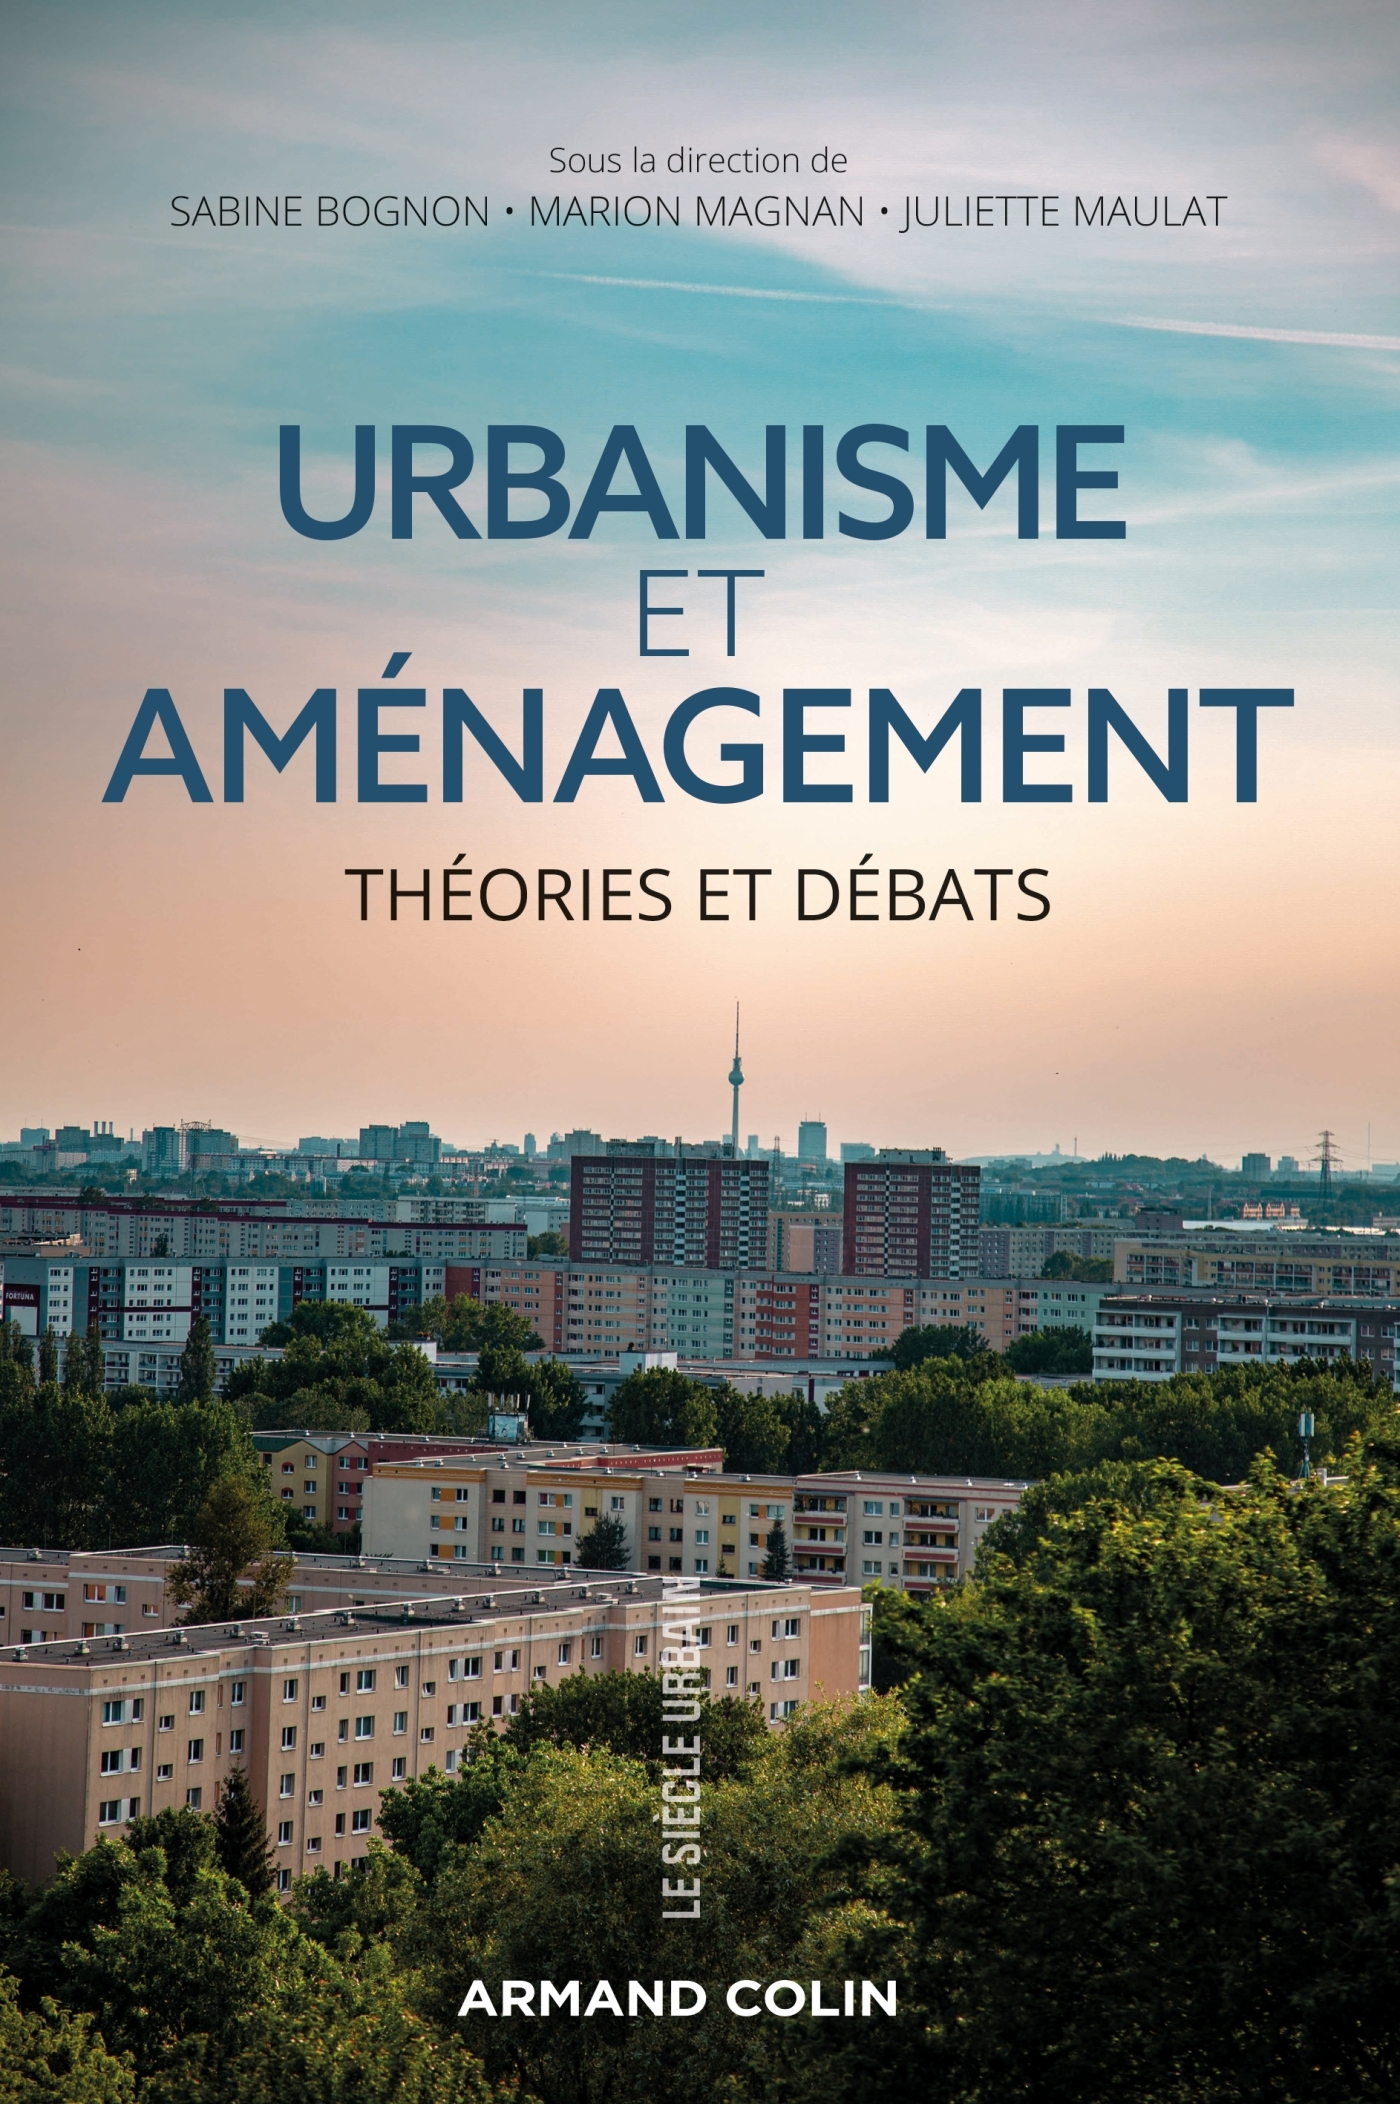 URBANISME ET AMENAGEMENT - THEORIES ET DEBATS